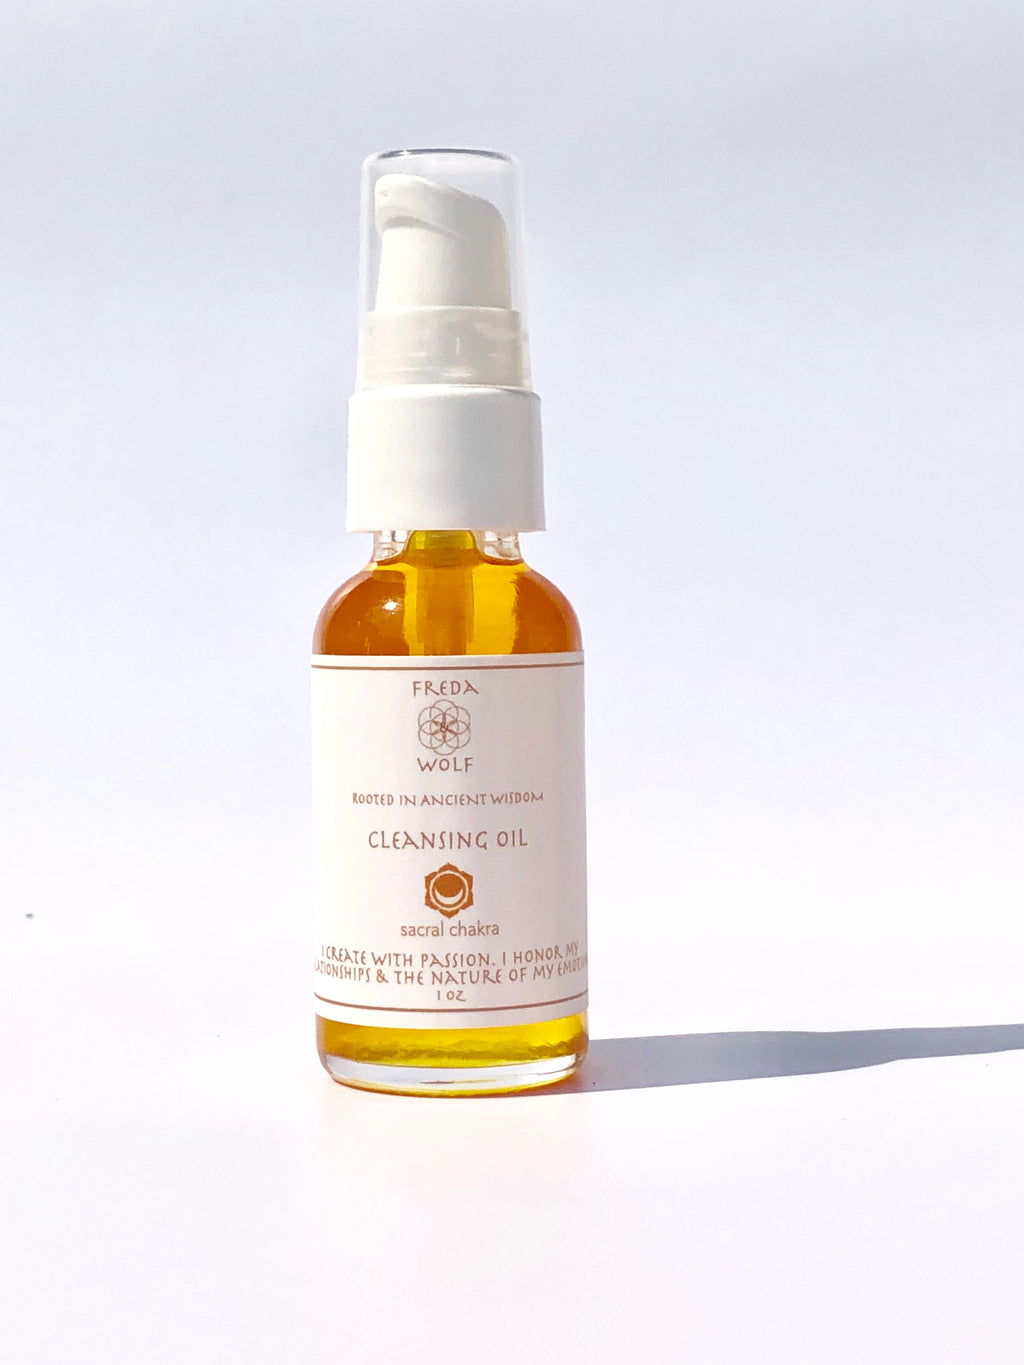 Cleansing Oil 1 oz - remove makeup, minimize pores and soften skin